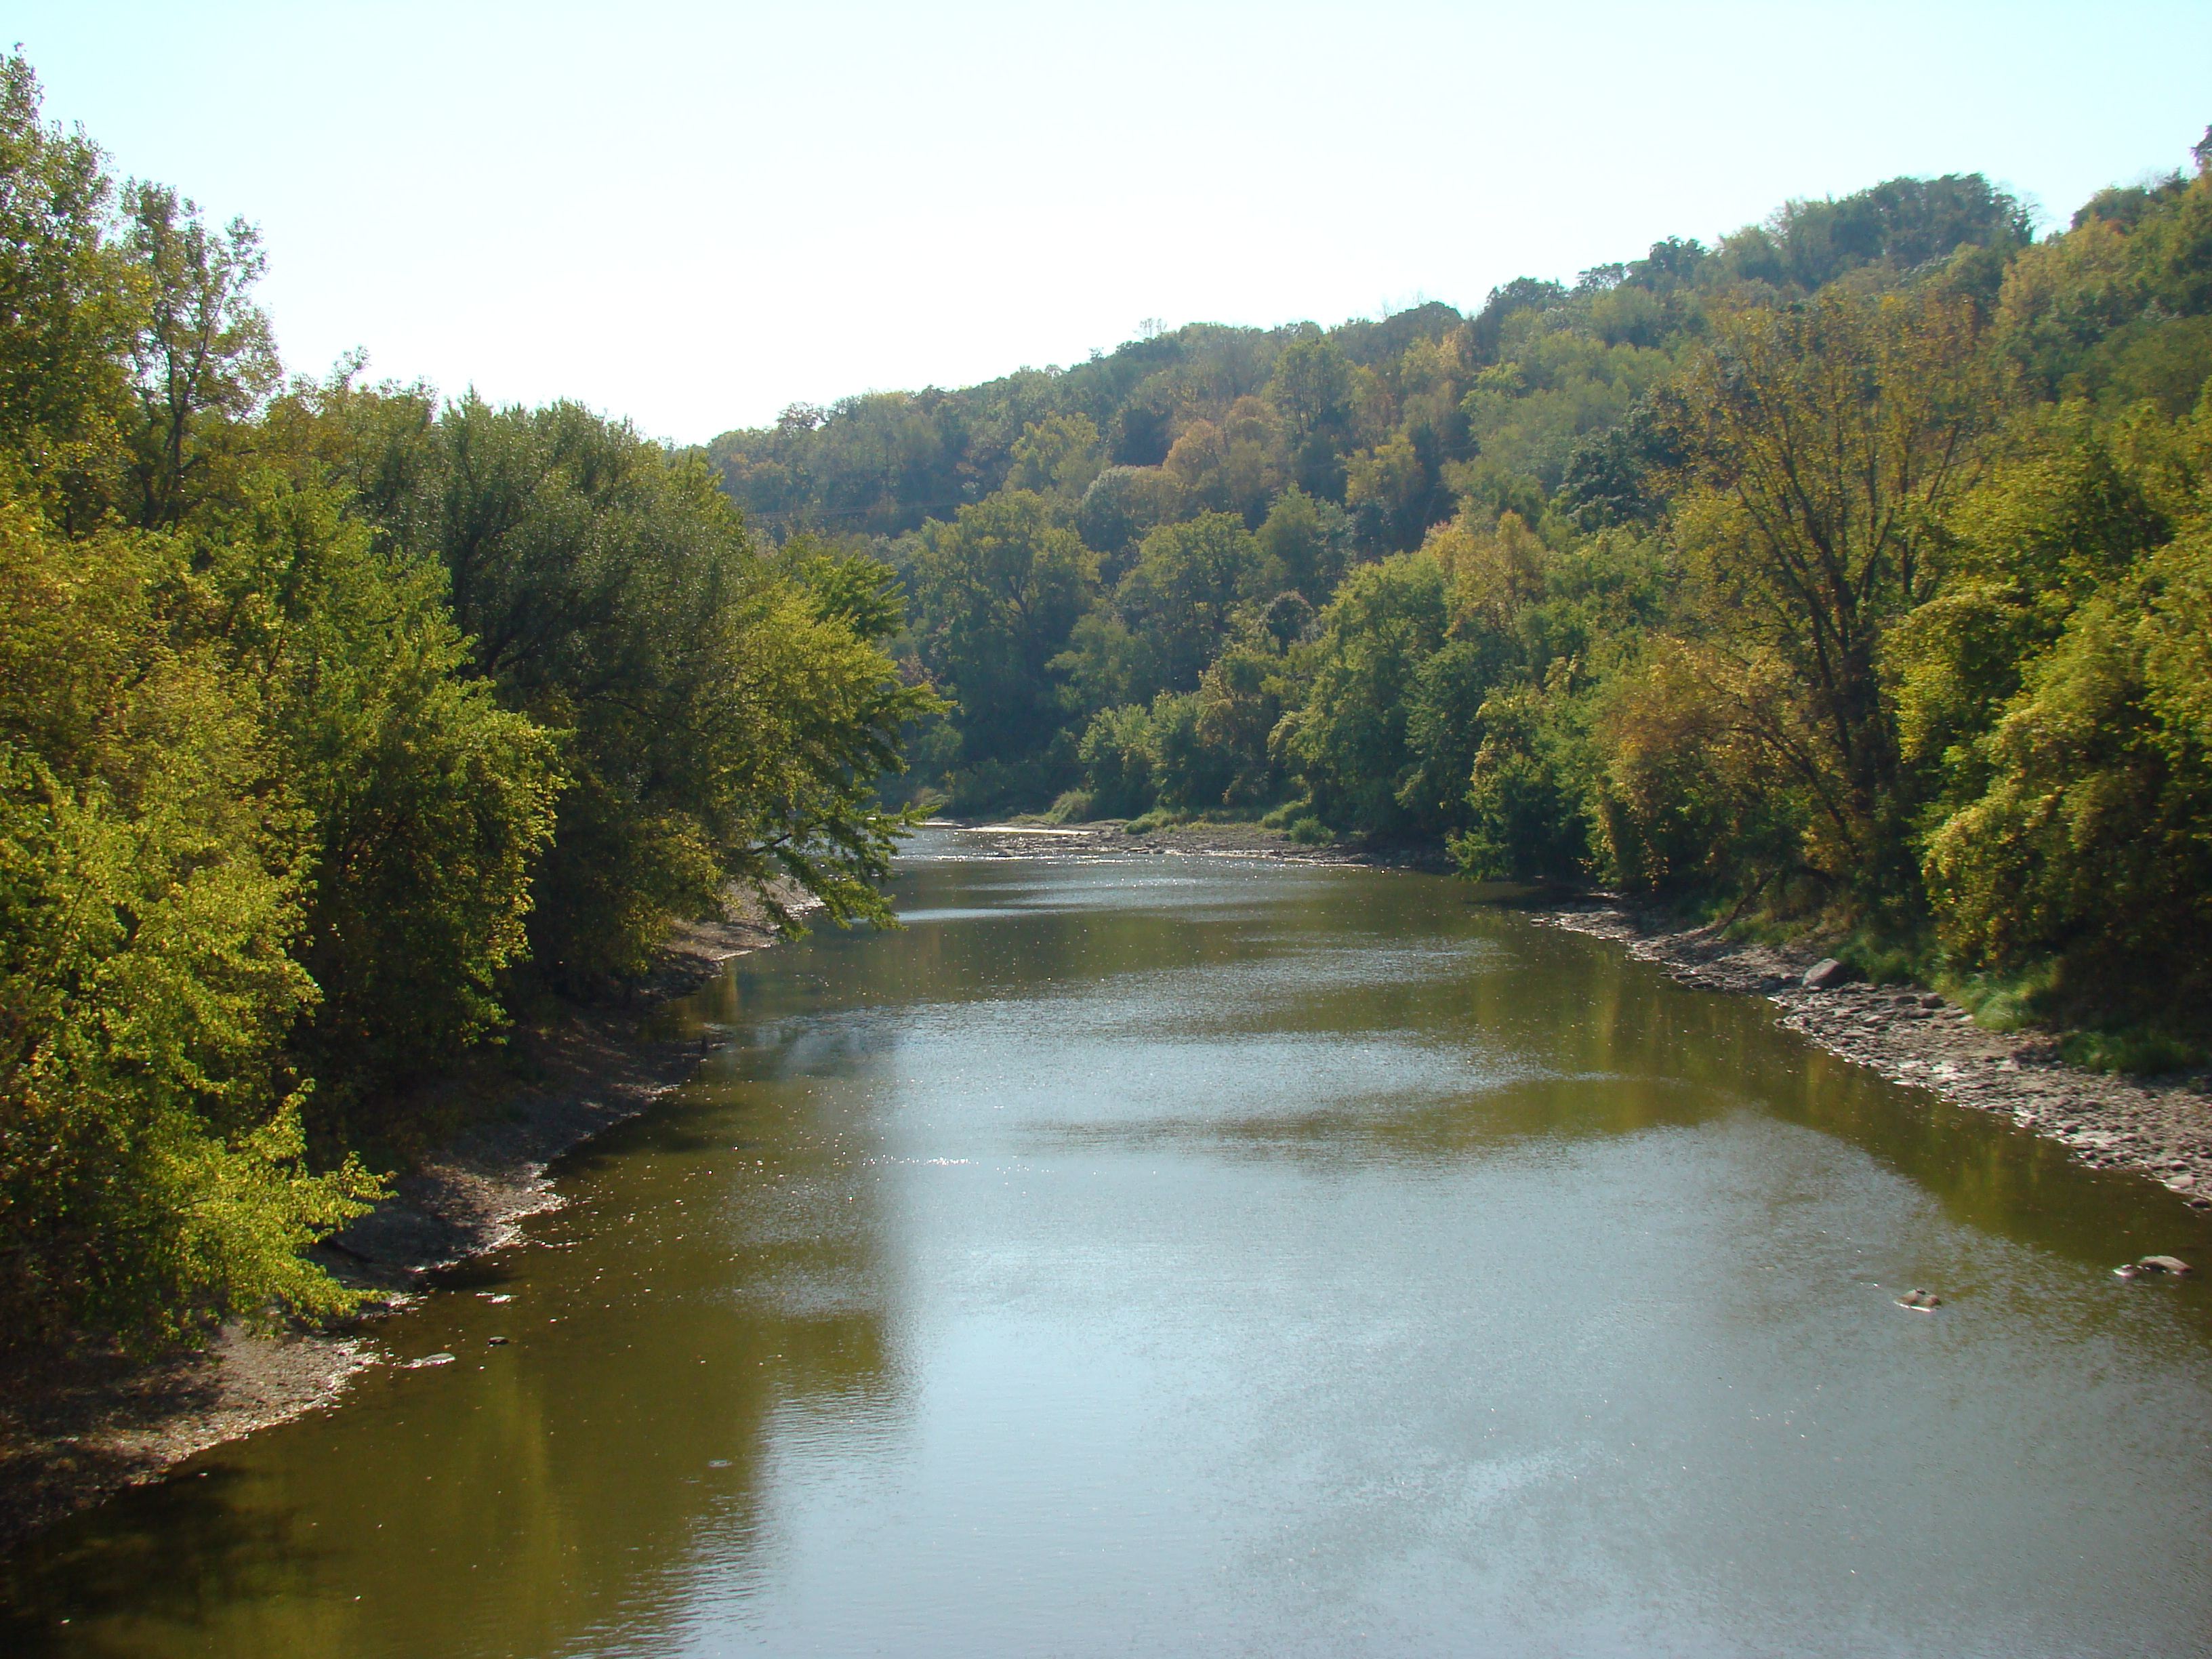 View of the Blue Earth River in early fall from a bridge.